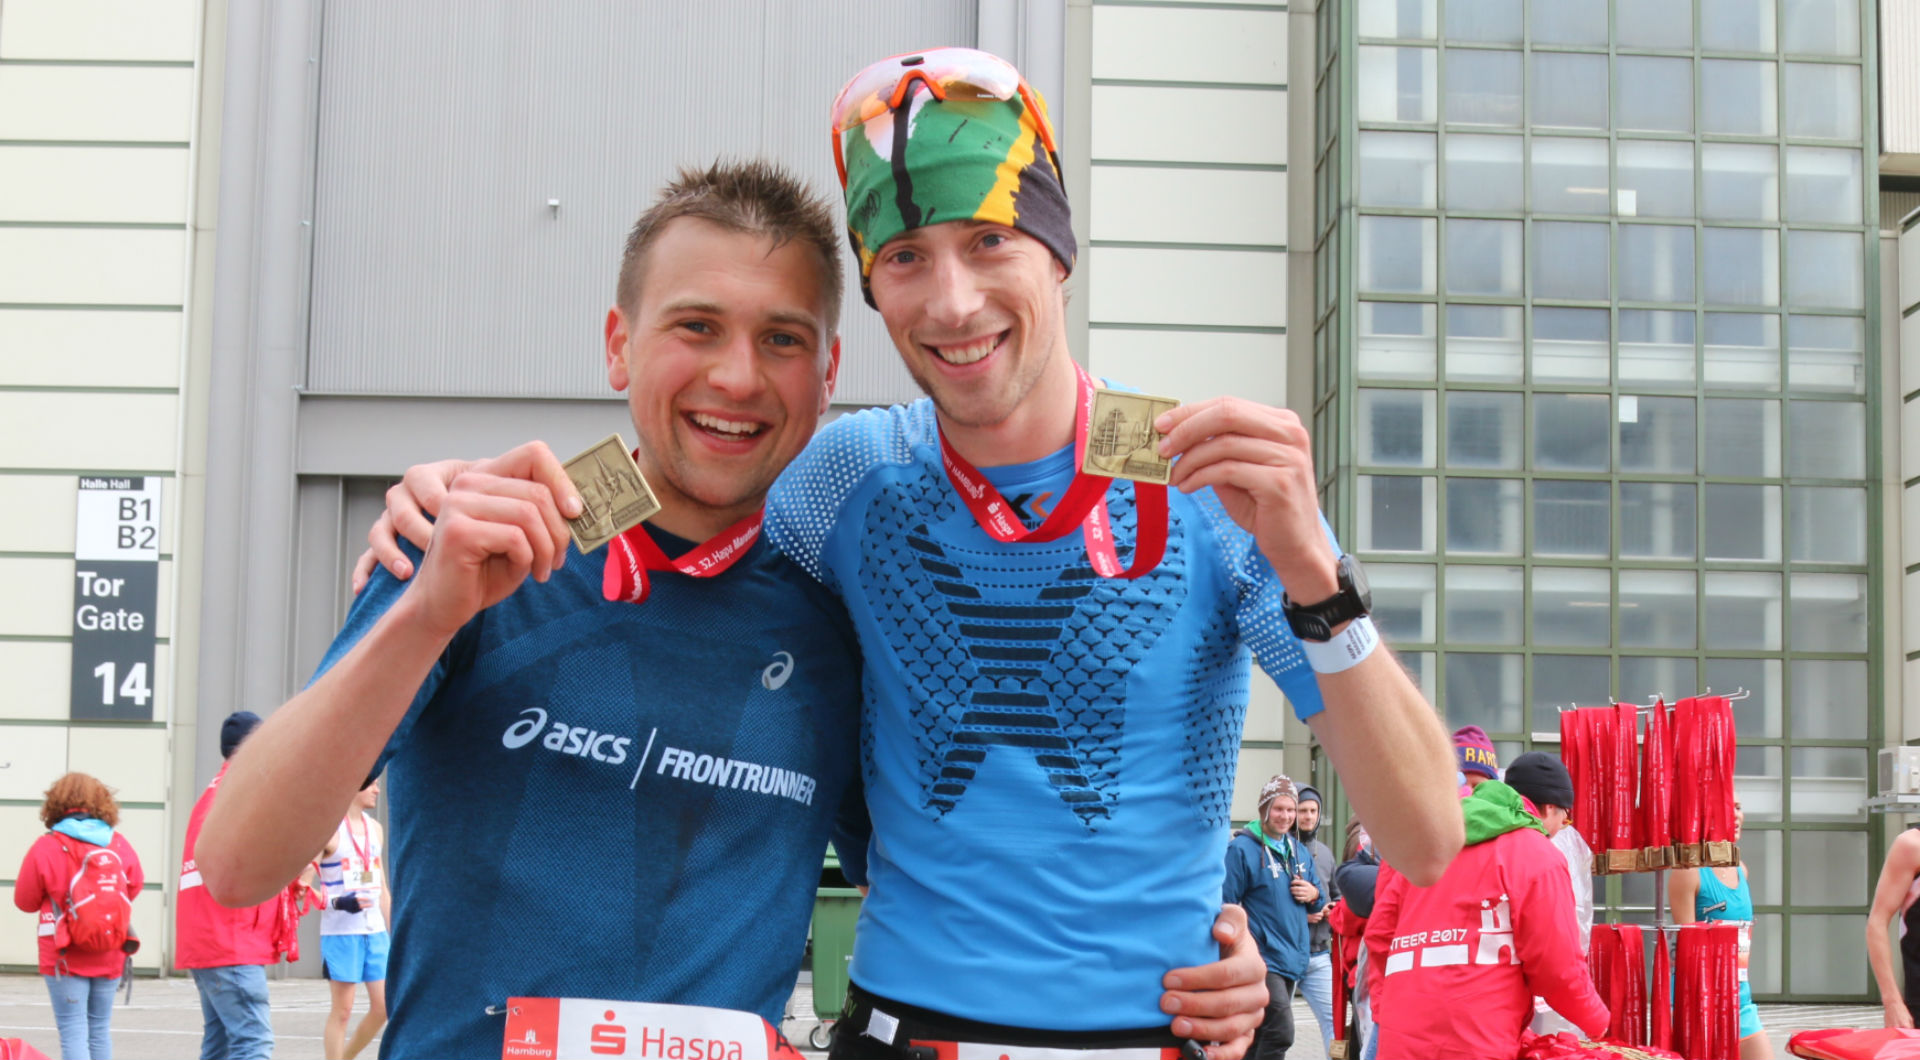 Happy FloRuns after finishing the Hamburg Marathon 2017 with a big personal best.